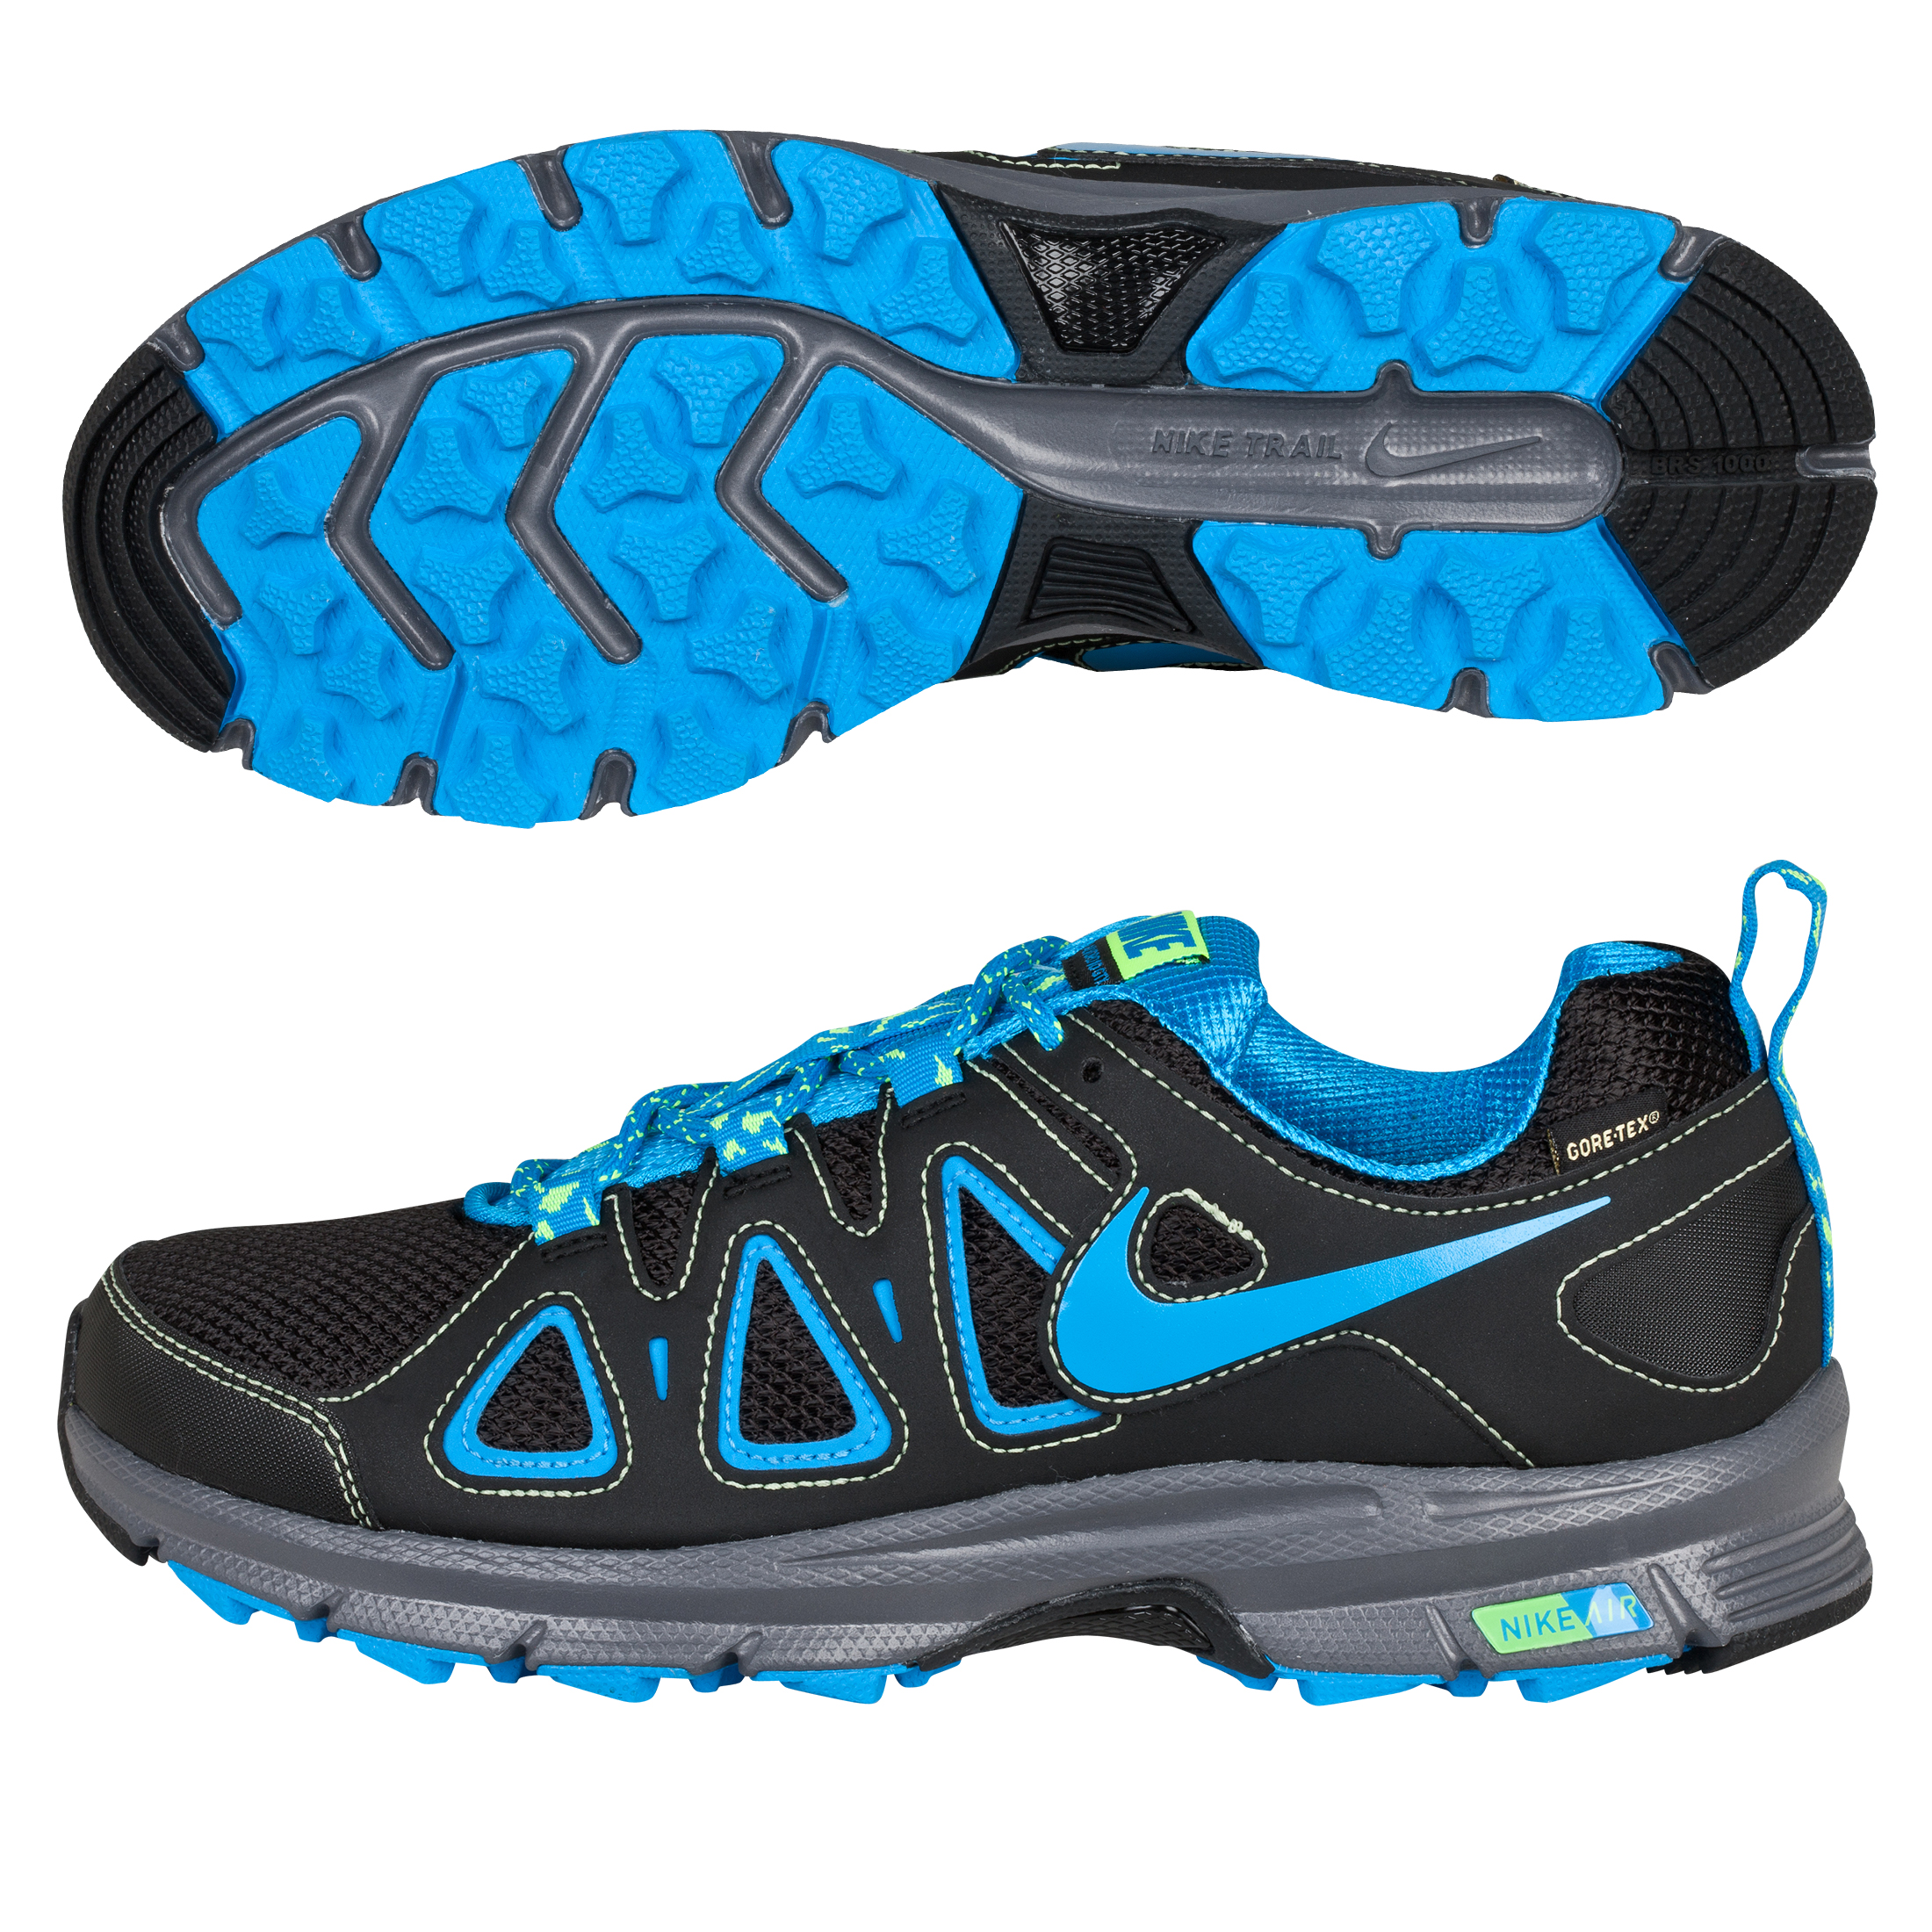 Nike Air Alvord 10 GTX Trainers - Black/Blue Glow/Volt/Dark Grey - Womens